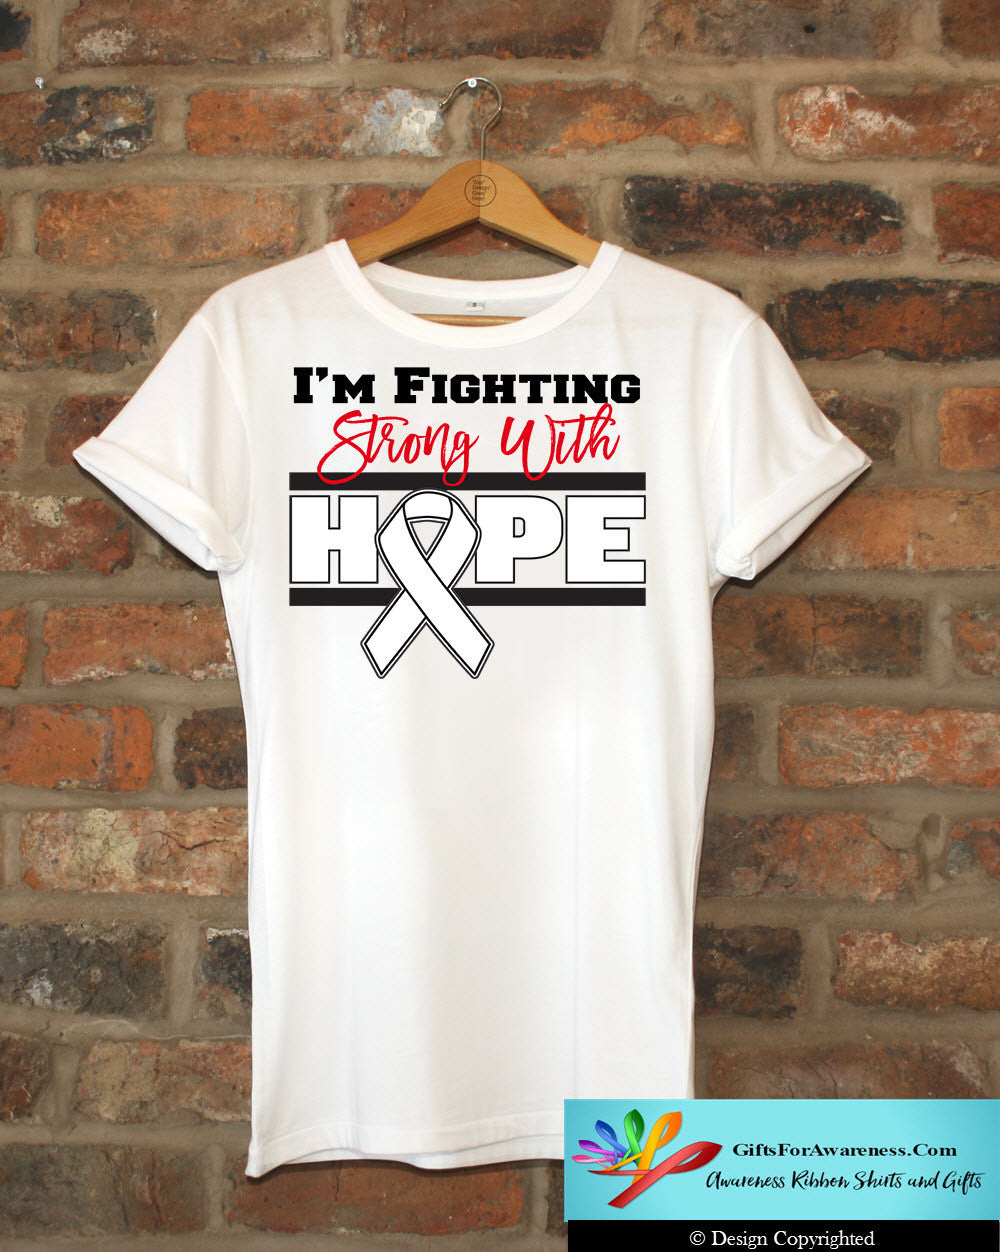 Lung Cancer I'm Fighting Strong With Hope Shirts - GiftsForAwareness